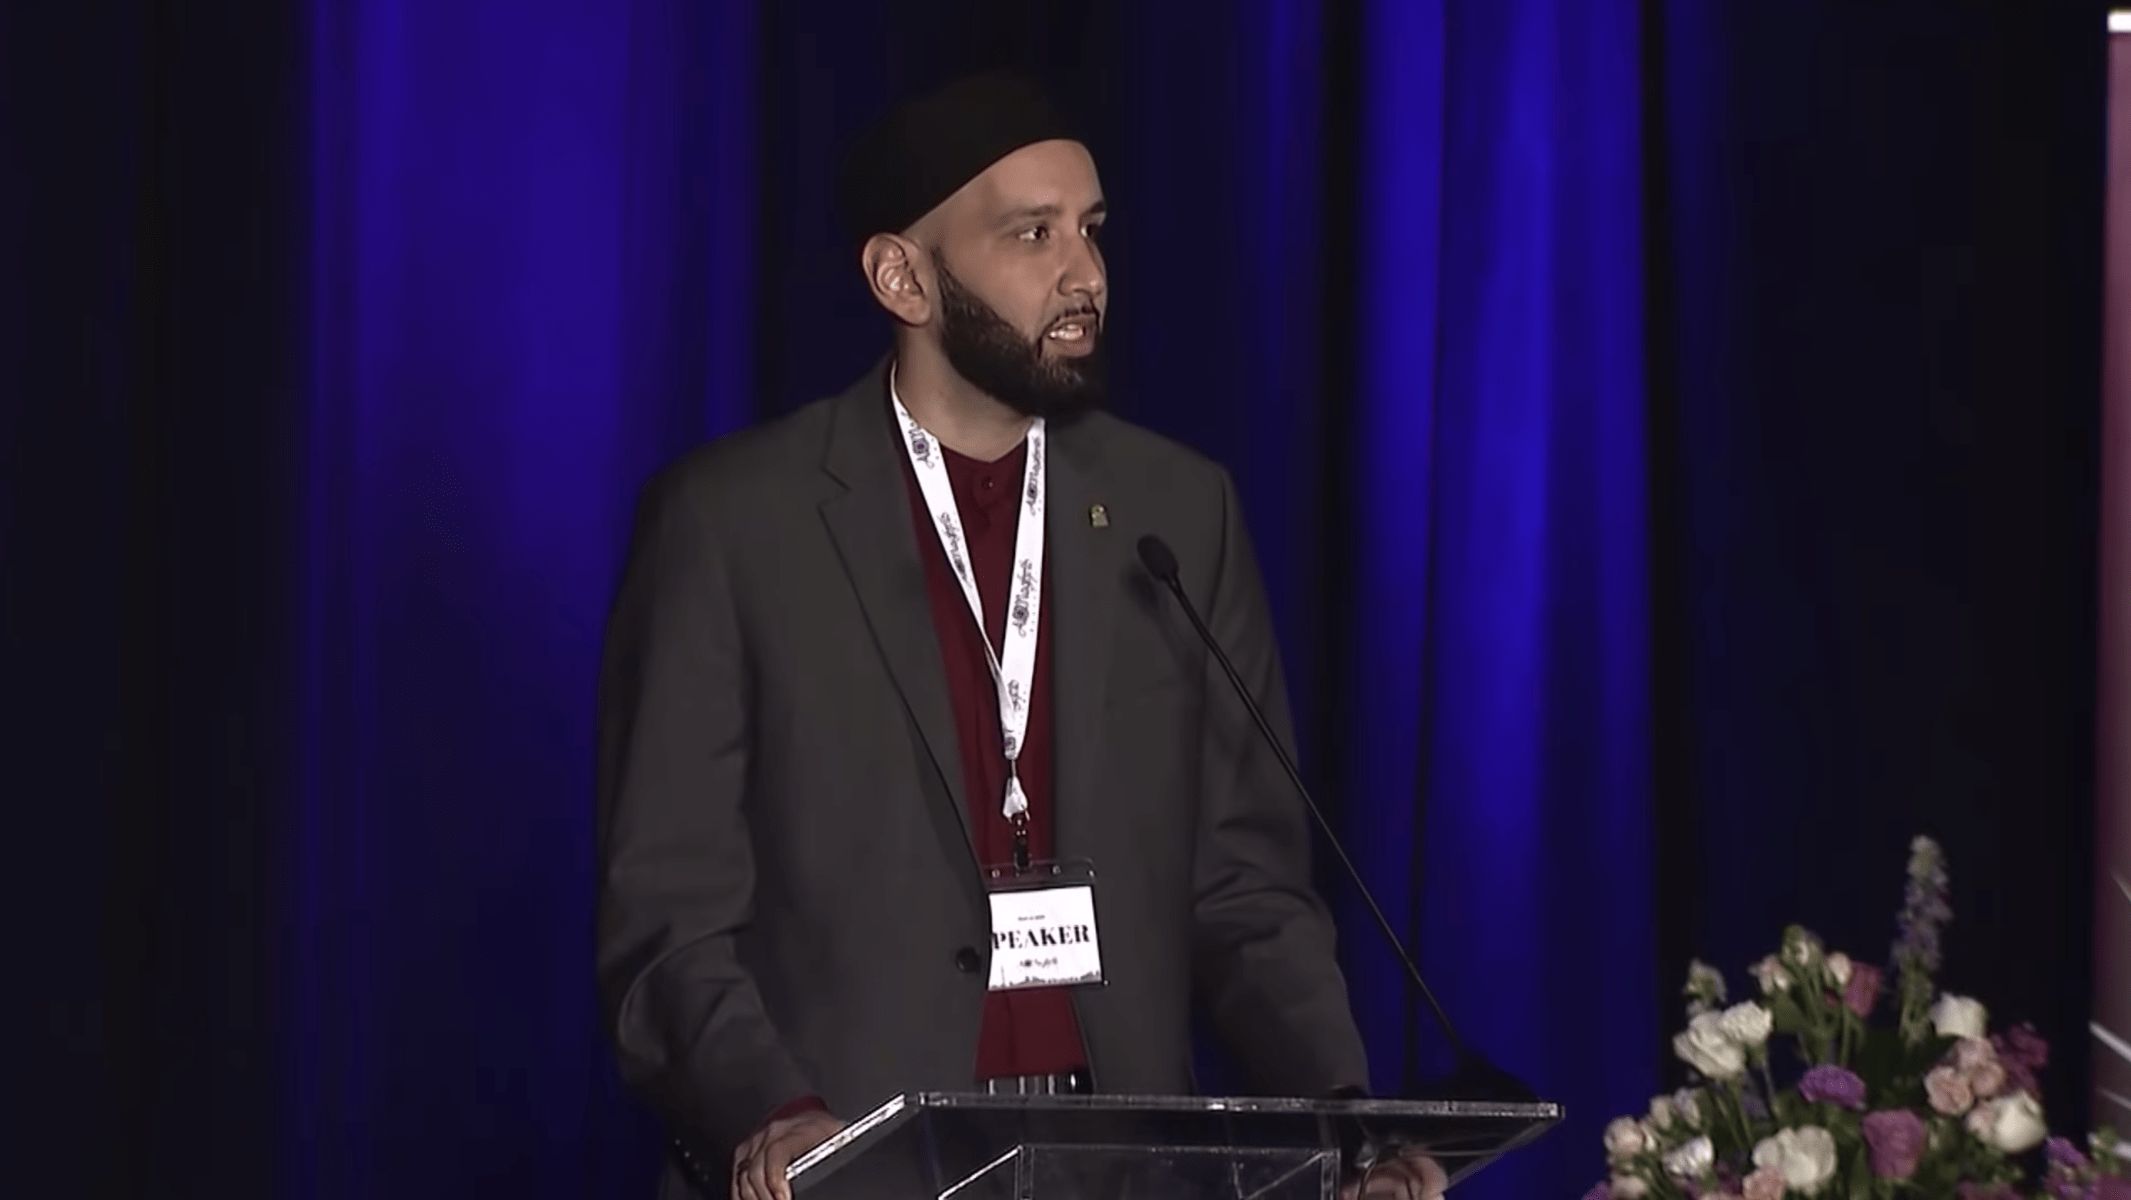 Omar Suleiman – Death is Real: Live Life with No Regrets